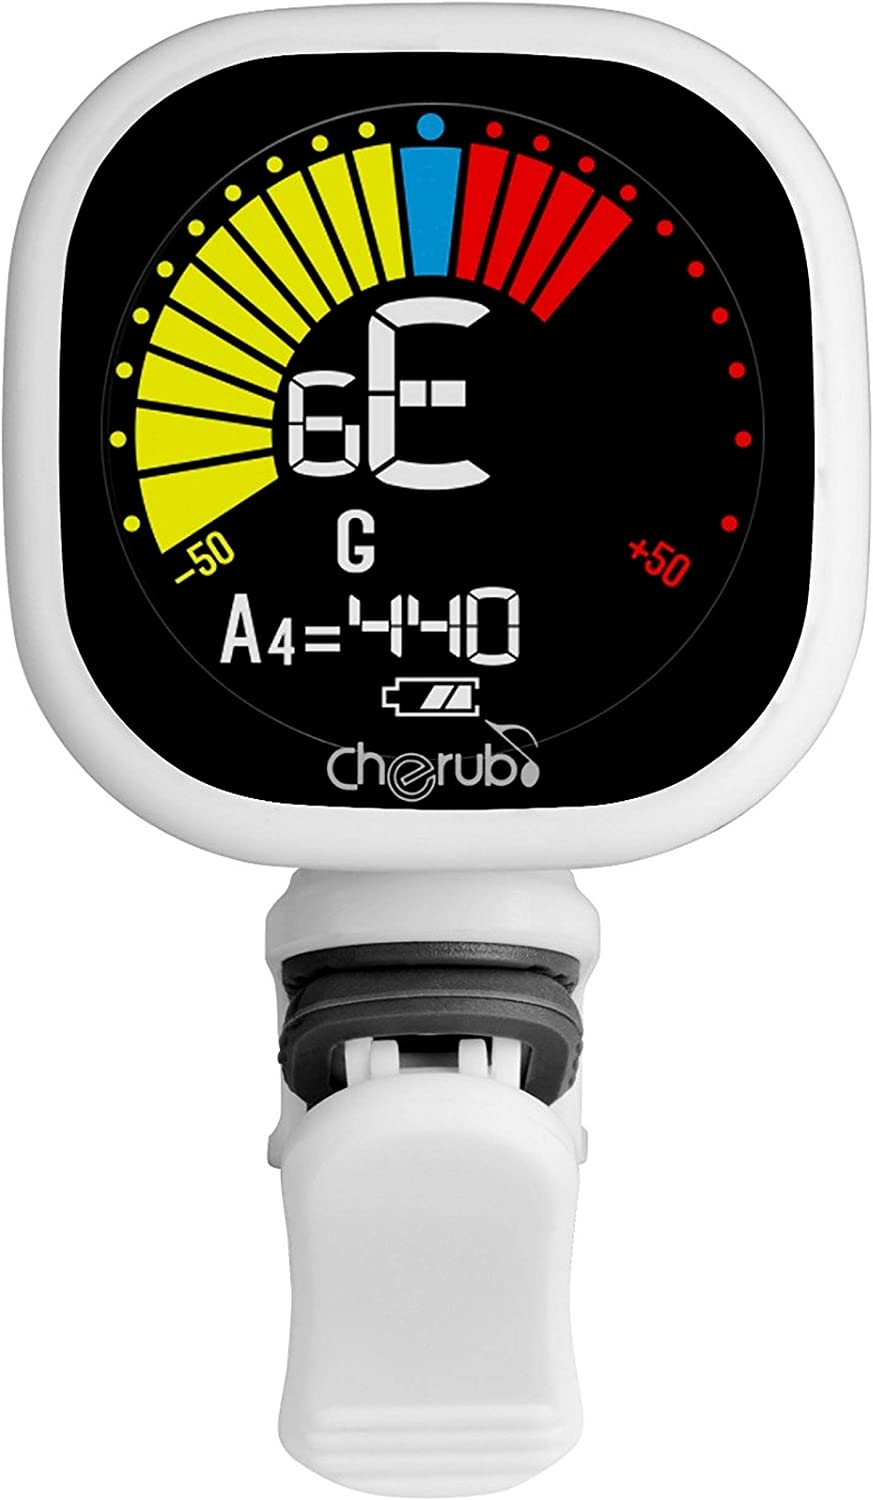 Cherub WST-675 USB Rechargeable Chromatic Tuner for Guitar Bass Ukulele Baritone with High Contrast Colorful Display